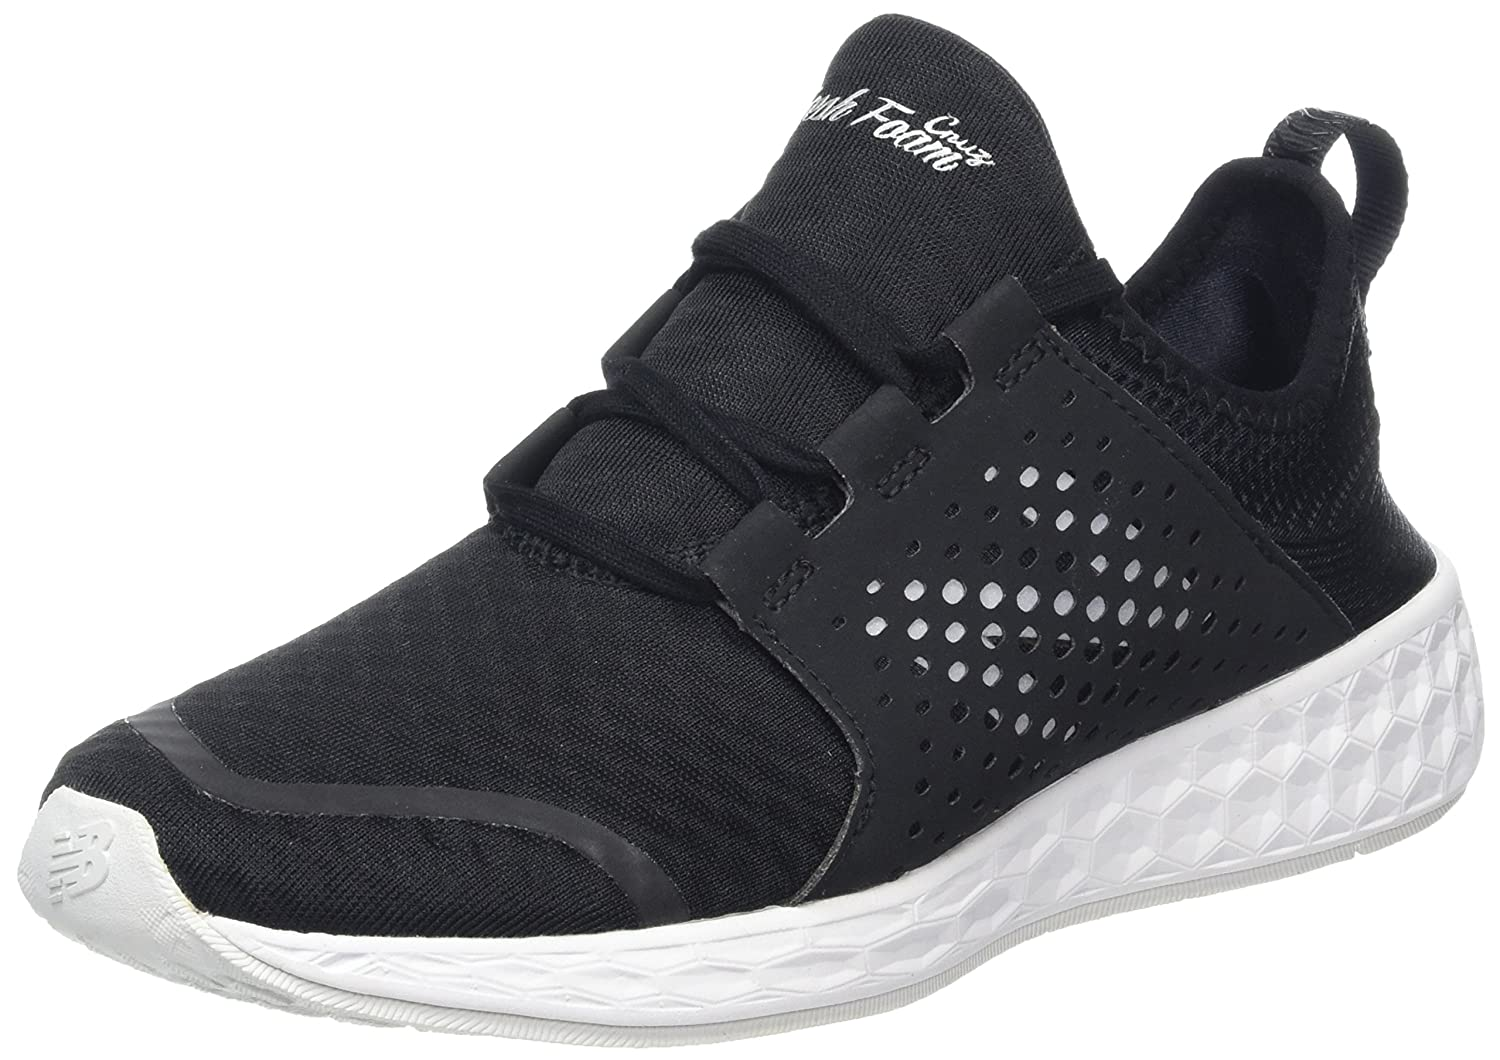 New Balance Women's Fresh Foam Cruz V1 Mesh Running Shoe B01LXMQDH7 12 B(M) US|Black/White